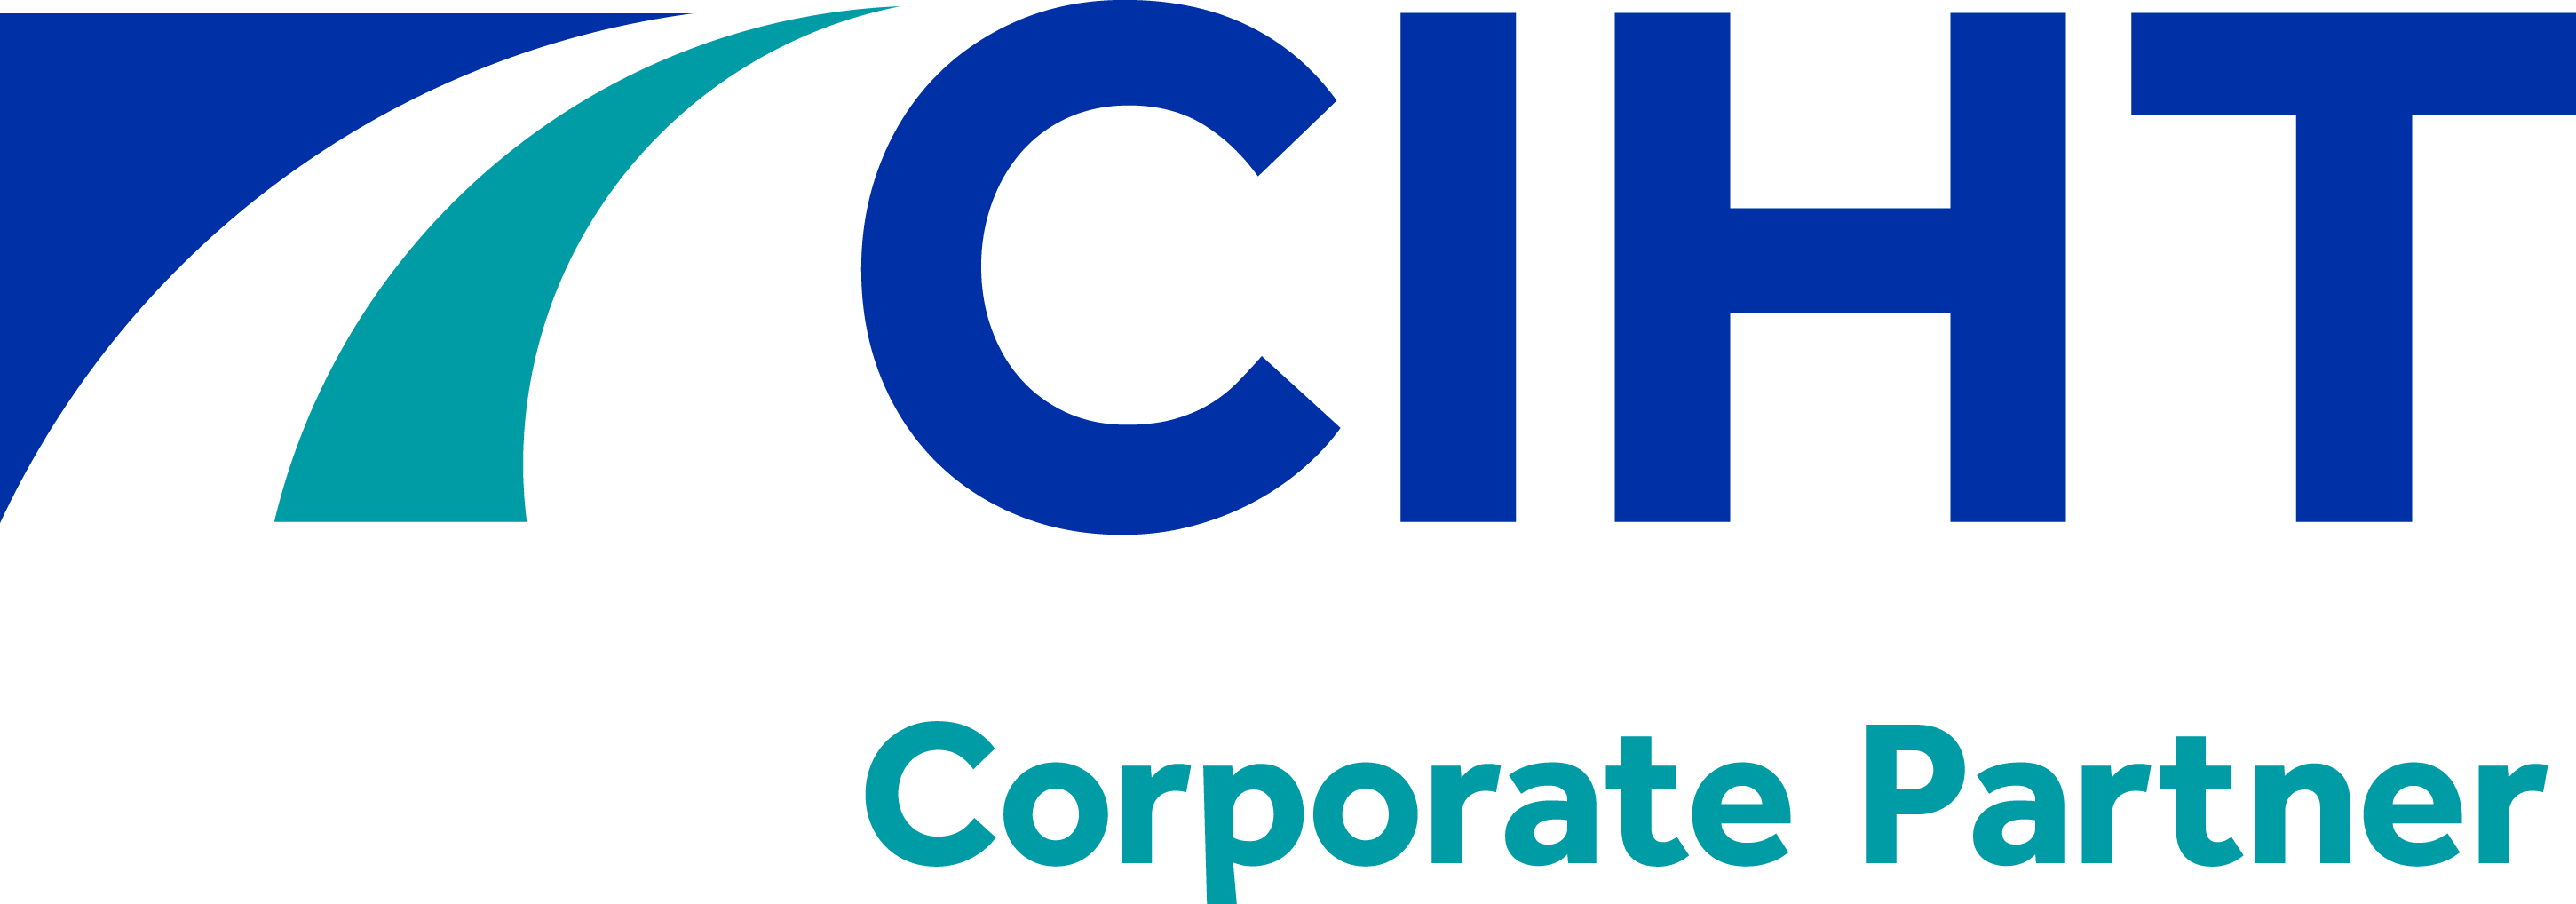 CIHT corporate partner logo